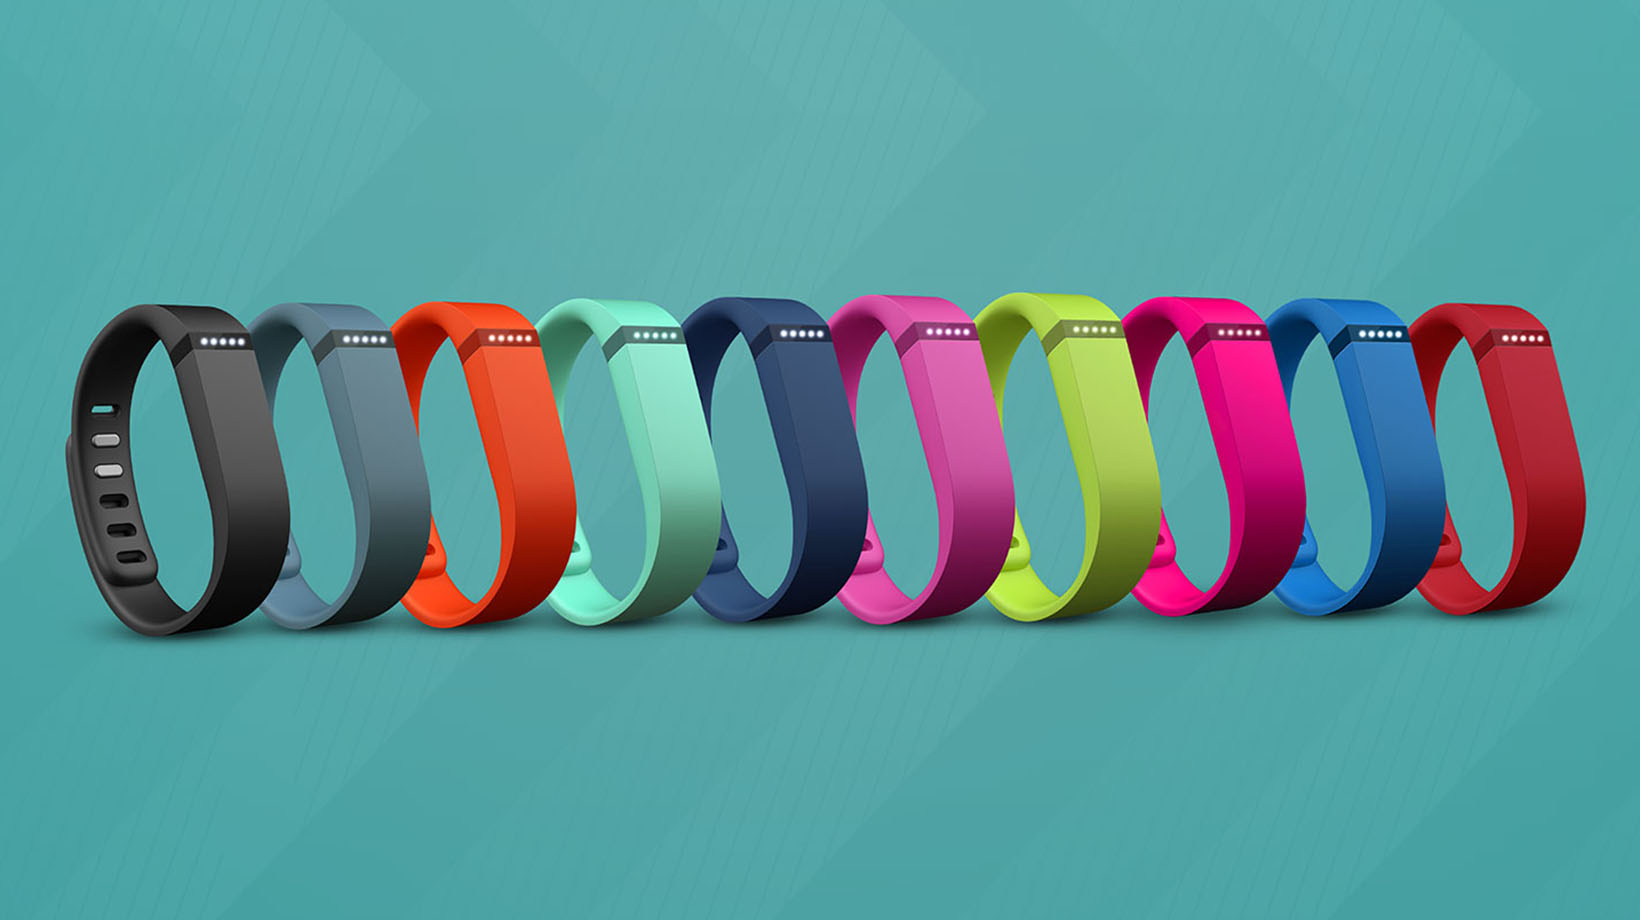 FitBit home workout gear